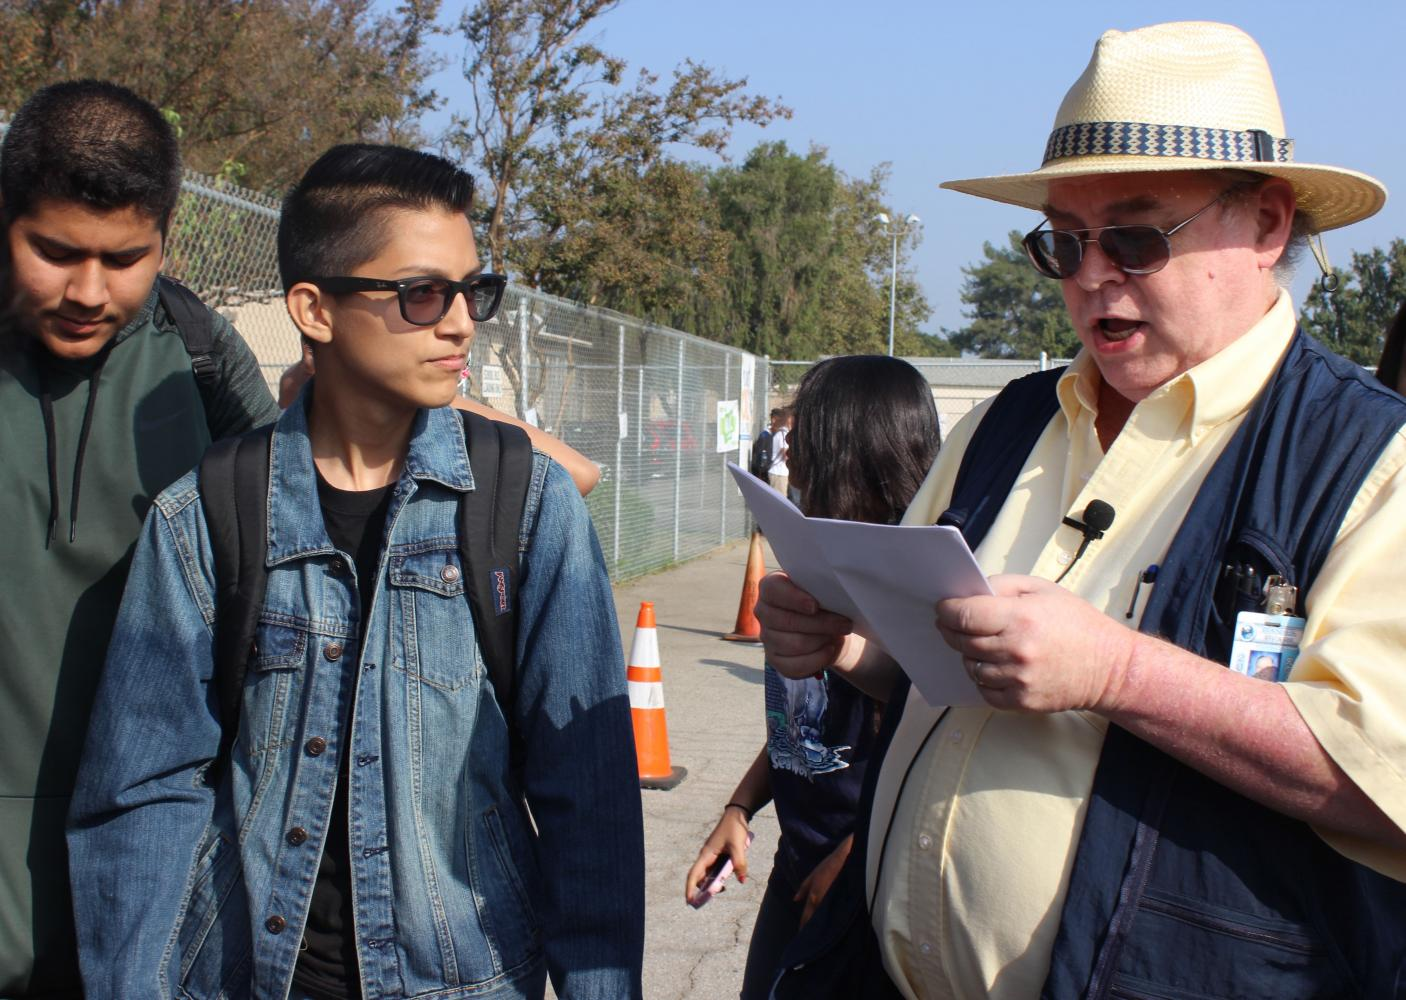 Sophomores Christopher Sarenana and Jason Echeverria listen as science teacher Stephen Schaffter takes roll. Schaffter organizes the school's emergency preparedness plans.